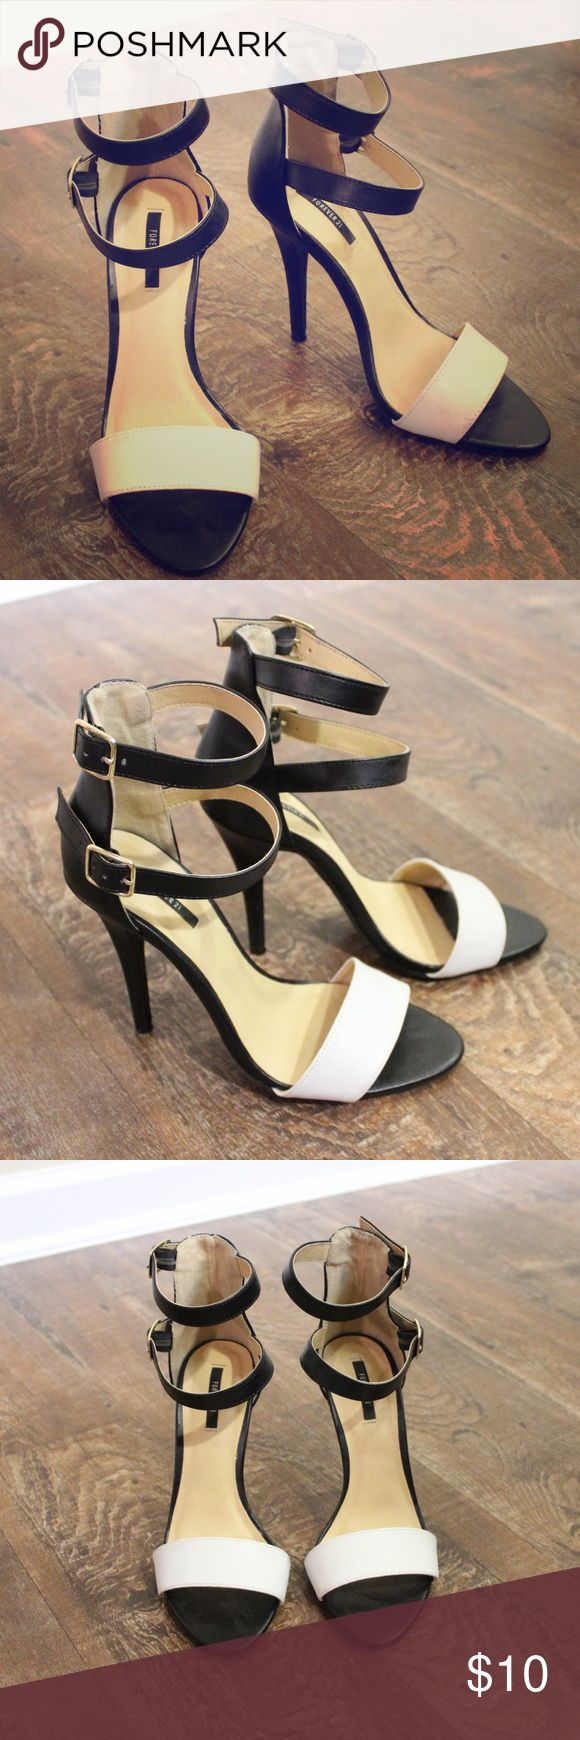 Black and White Strappy Heels Forever 21 Strappy Heels. Colors are black and white with gold buckles. Size not marked but I would say they're a 6.5. Only worn a few times! Forever 21 Shoes Heels